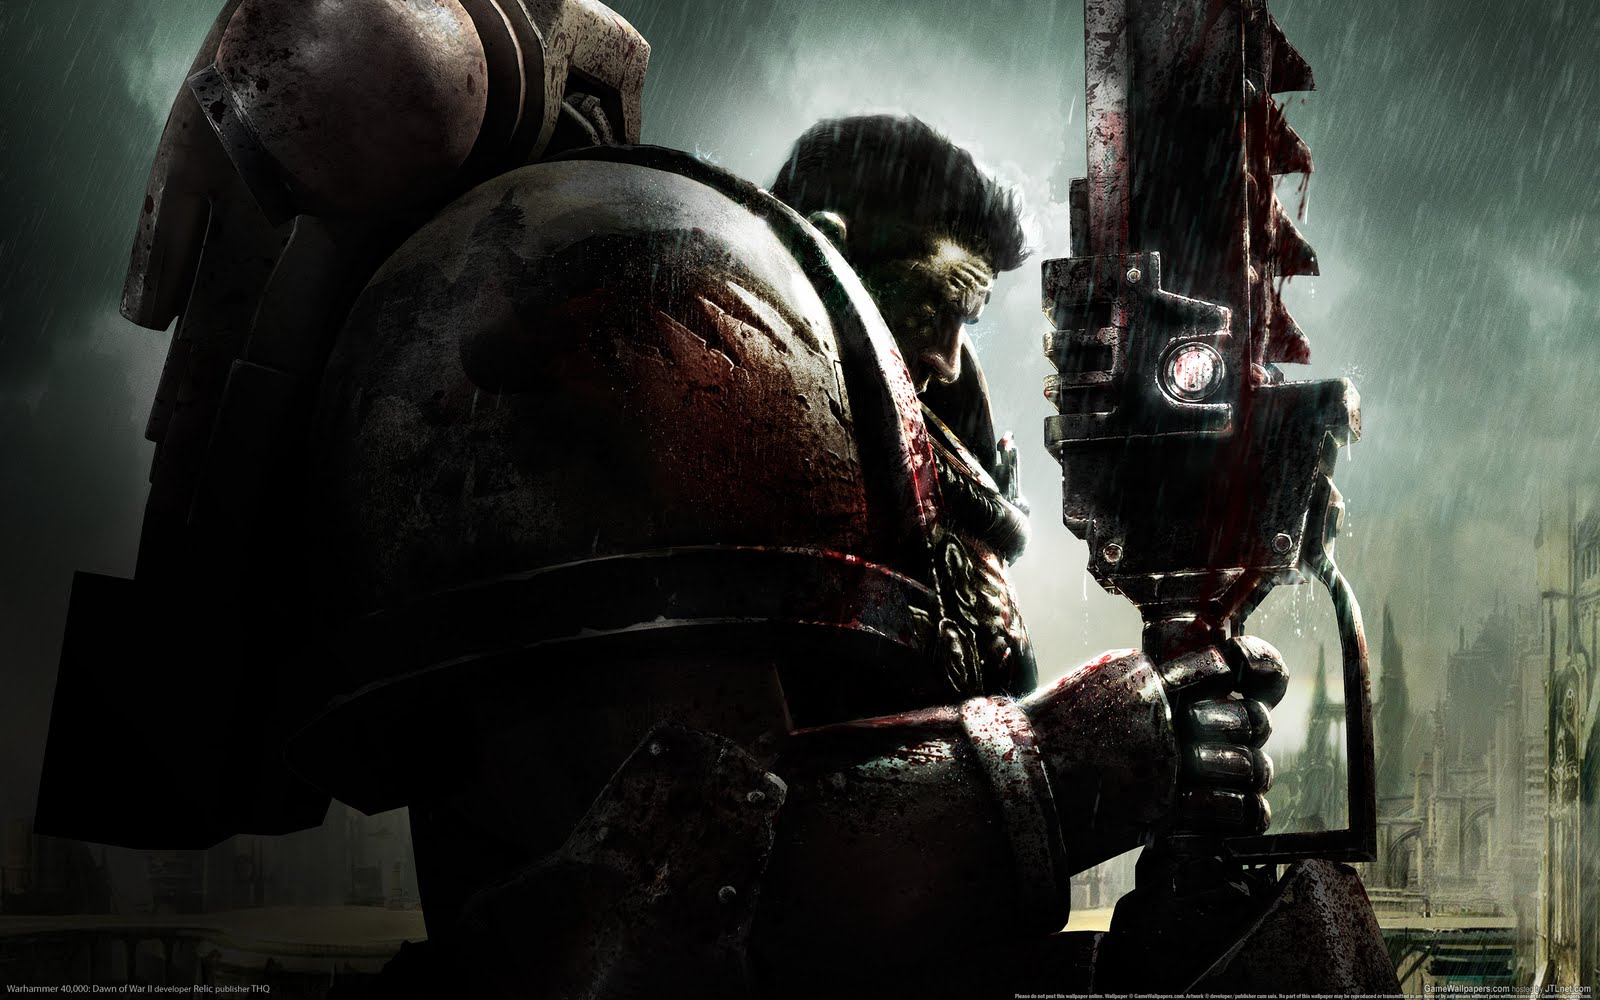 Warhammer 40,000 Space Marine on Steam